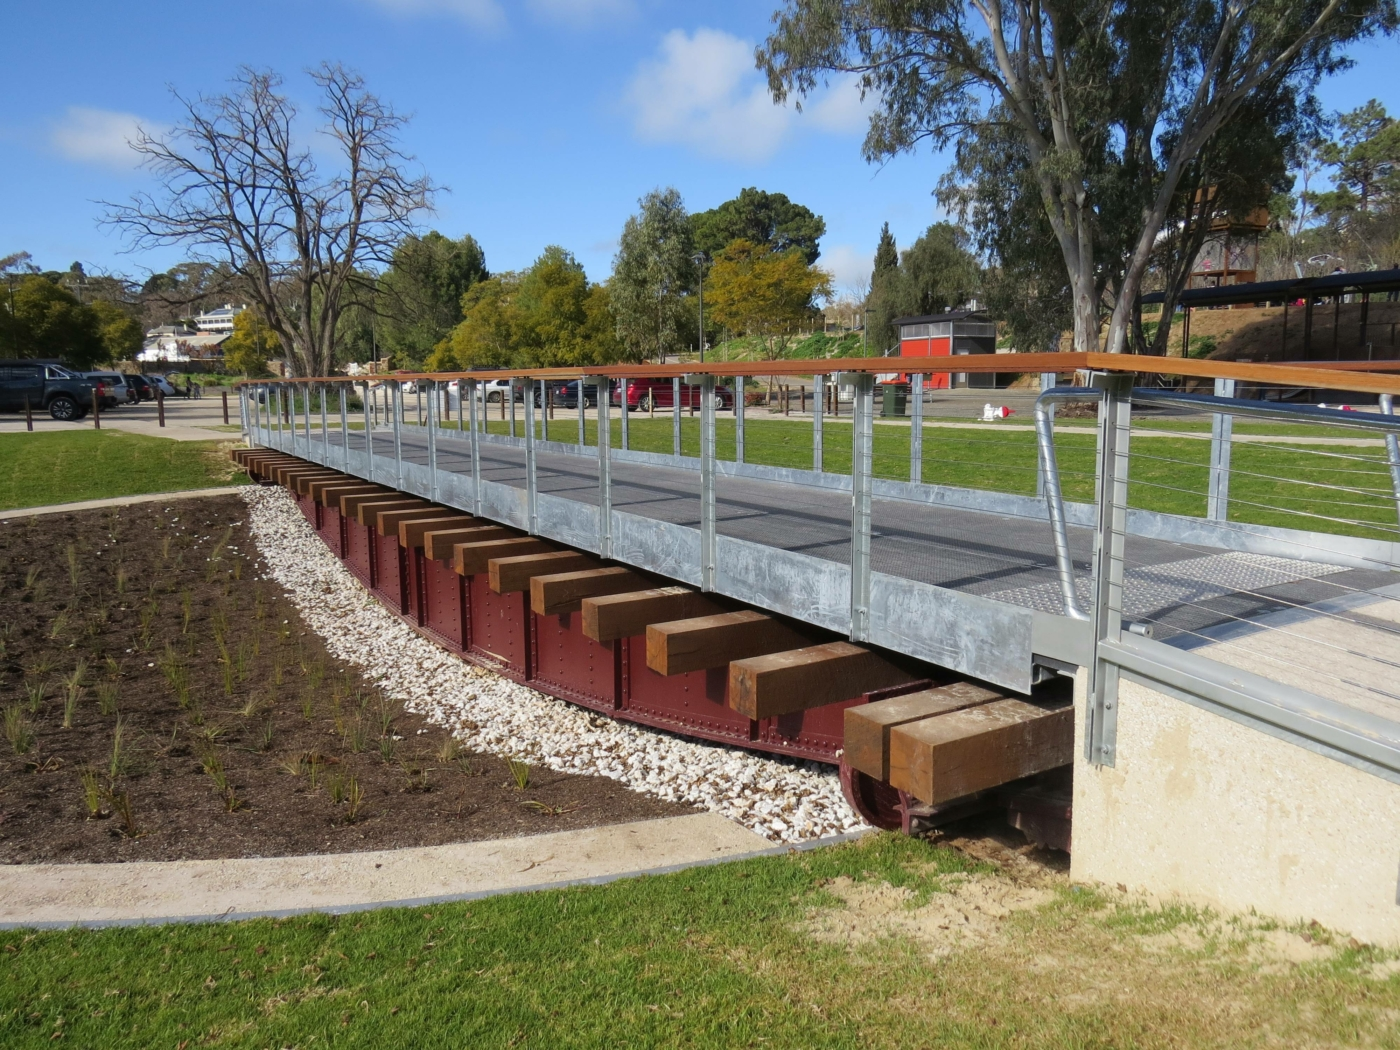 The turntable at the Angaston Station is now a feature of the trail (2020)